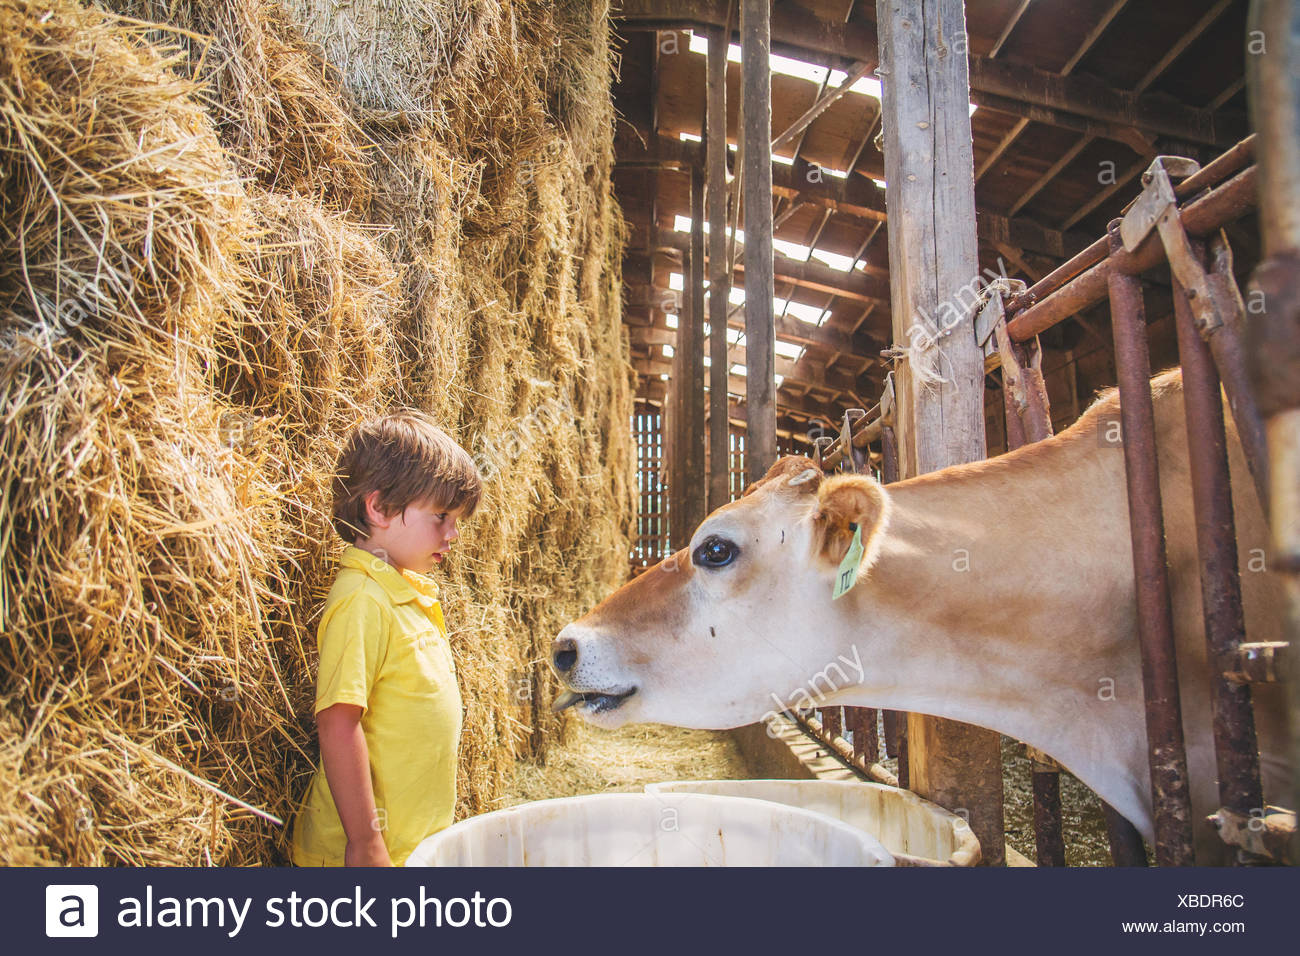 Boy on farm with a cow - Stock Image